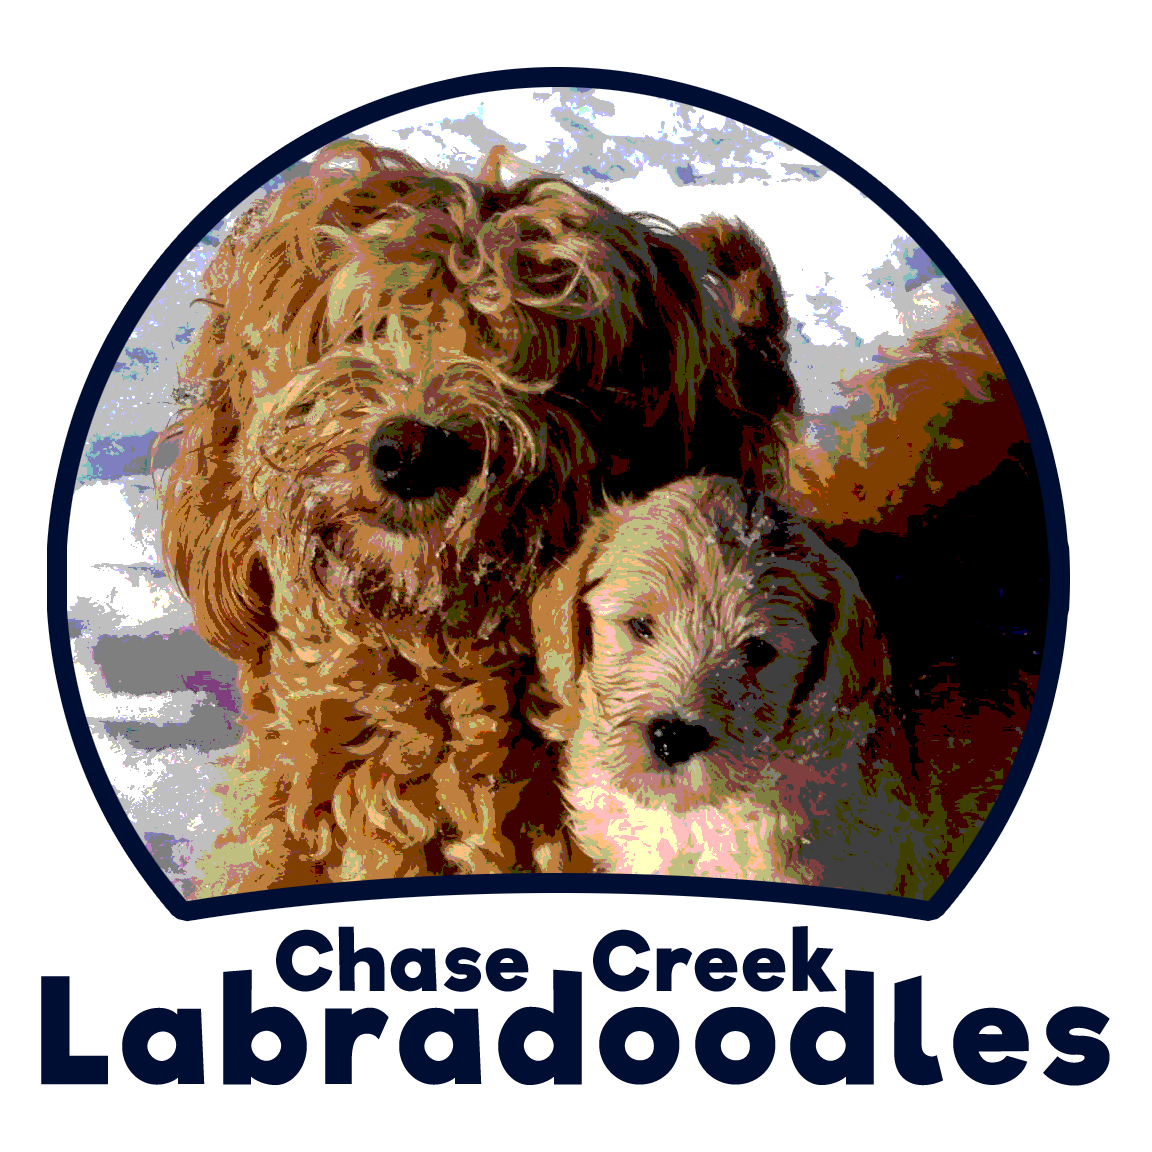 Chase Creek Labradoodles